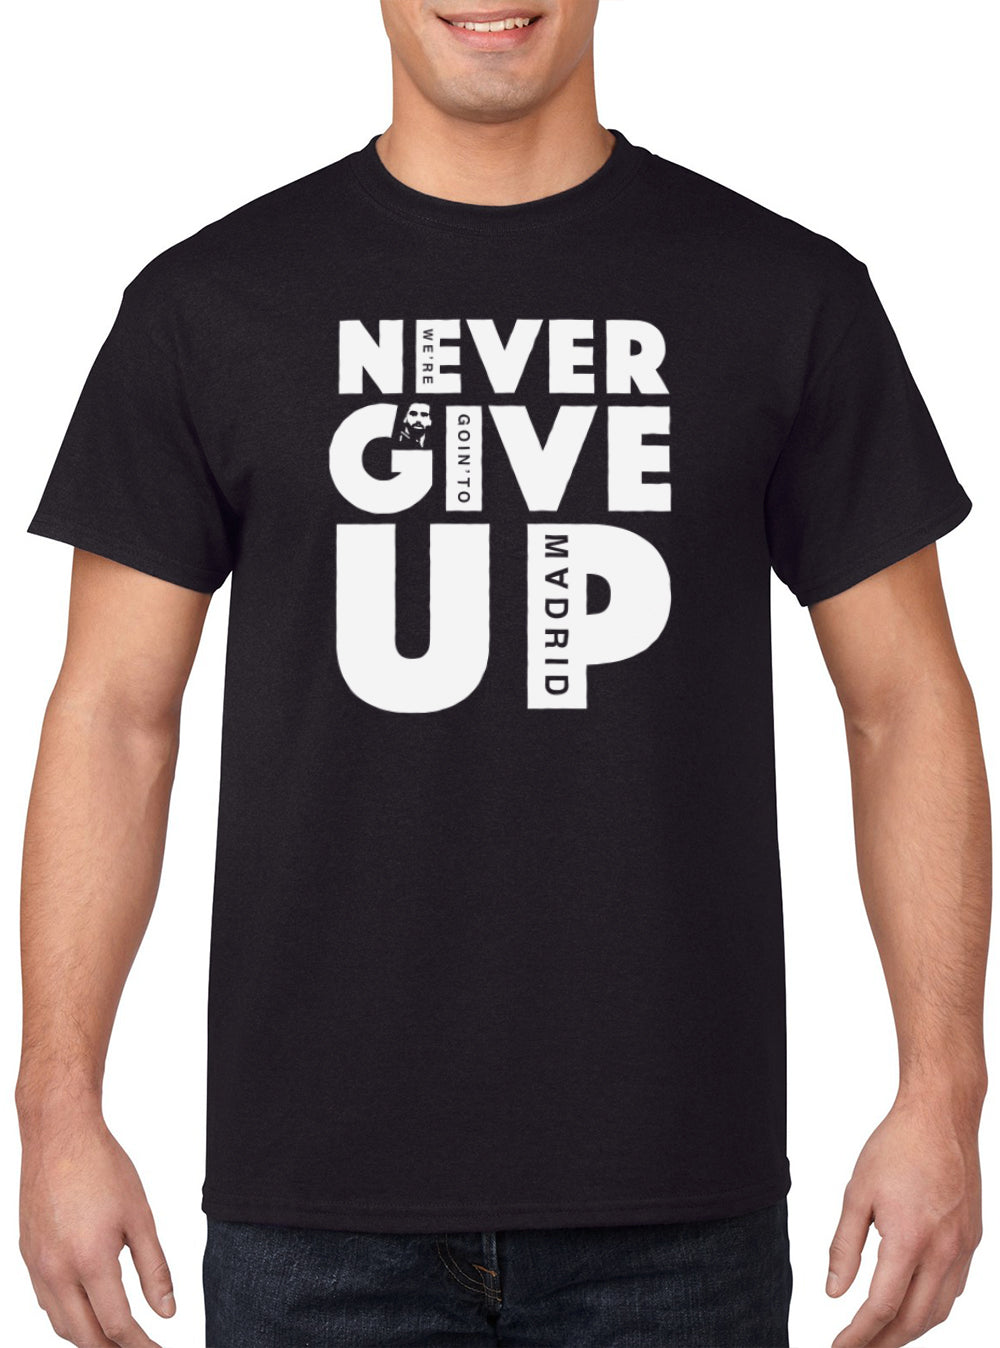 15 NEVER GIVE UP 'We're Goin' To Madrid' Edition Tee